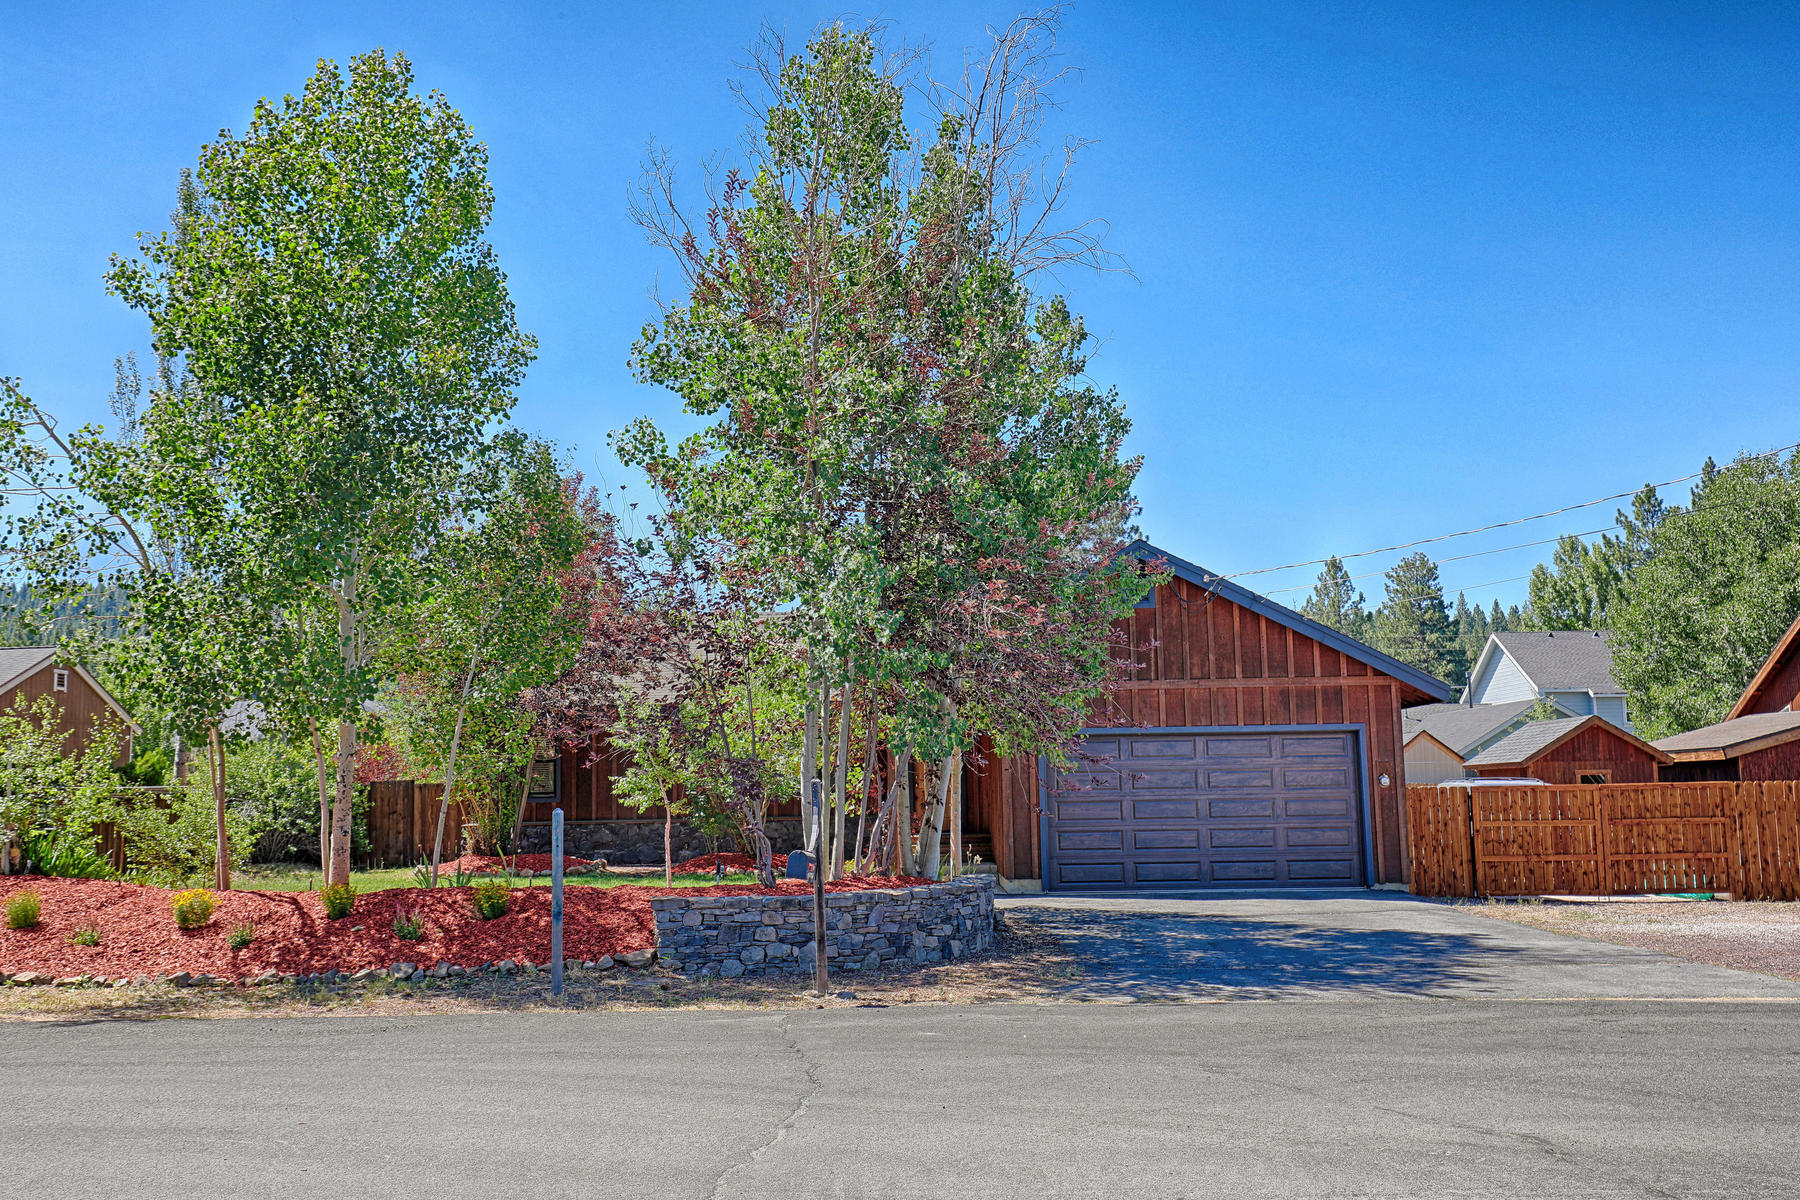 Additional photo for property listing at 16155 Canterbury Lane, Truckee, CA 96161 16155 Canterbury Lane Truckee, California 96161 United States